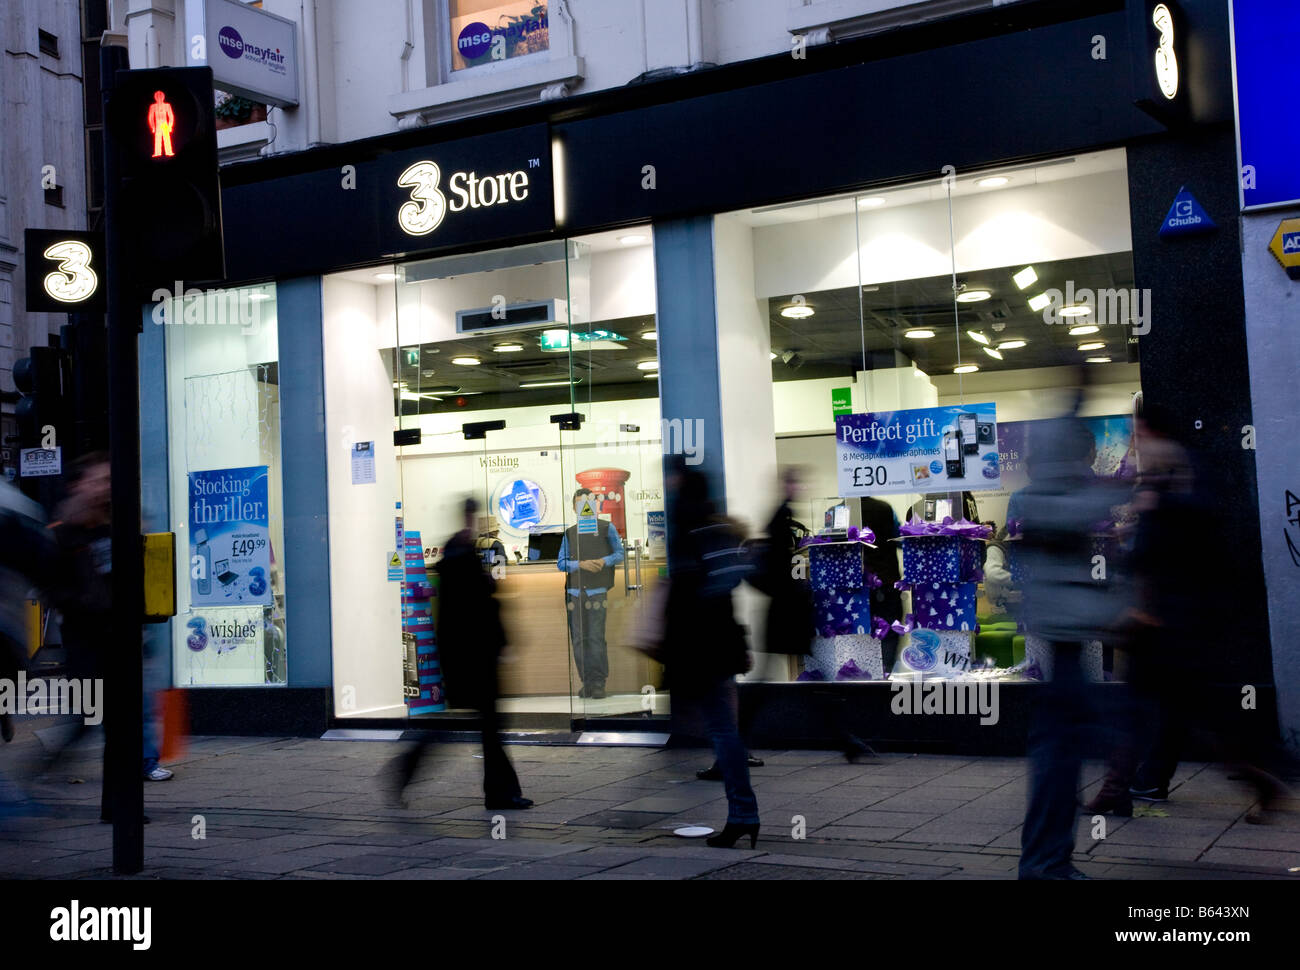 the branch of 3 mobile phone network on oxford street london Stock Photo